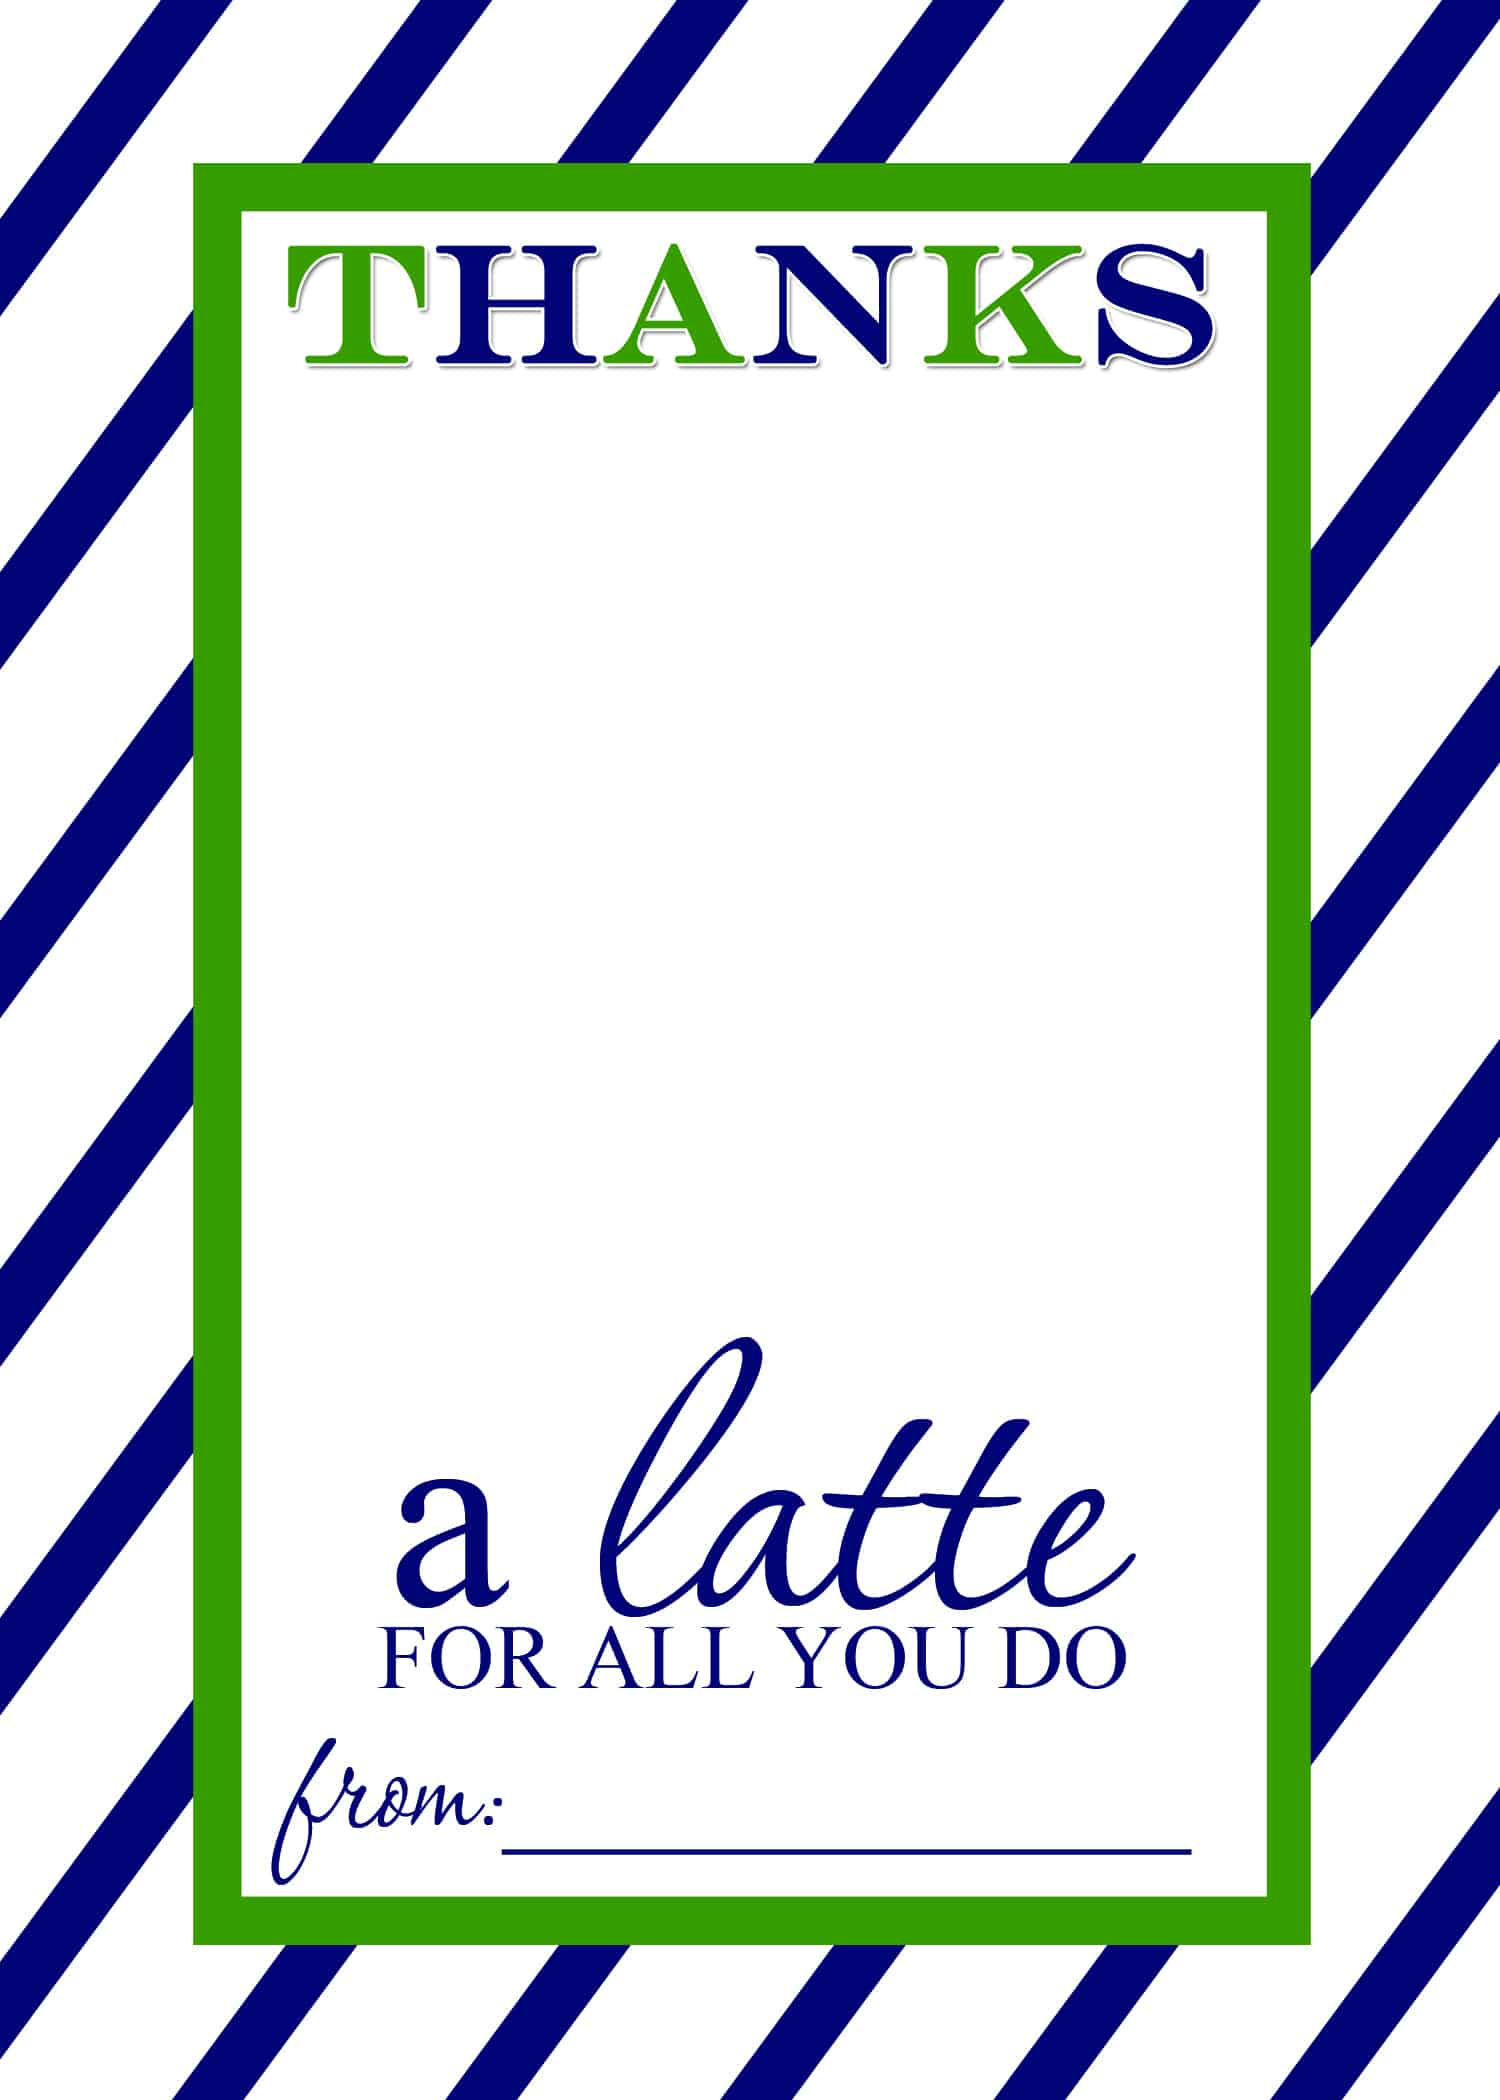 Teacher appreciation gift idea thanks a latte free printable bluegreen thanks a latte free printable card thanks a latte teacher appreciation gift negle